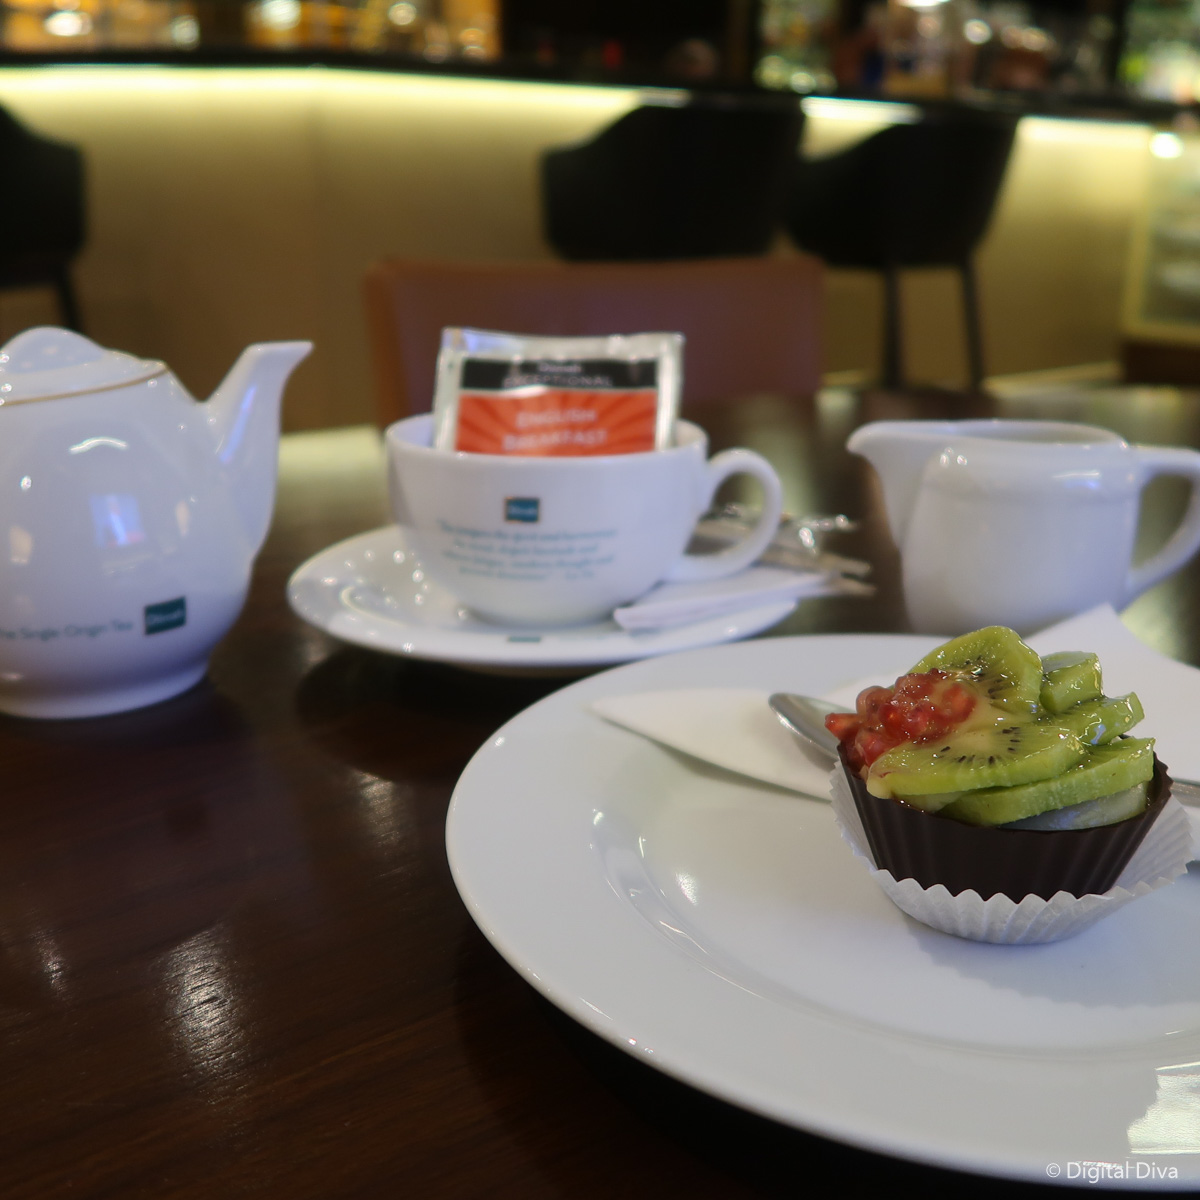 Afternoon Tea at the Hilton Budapest